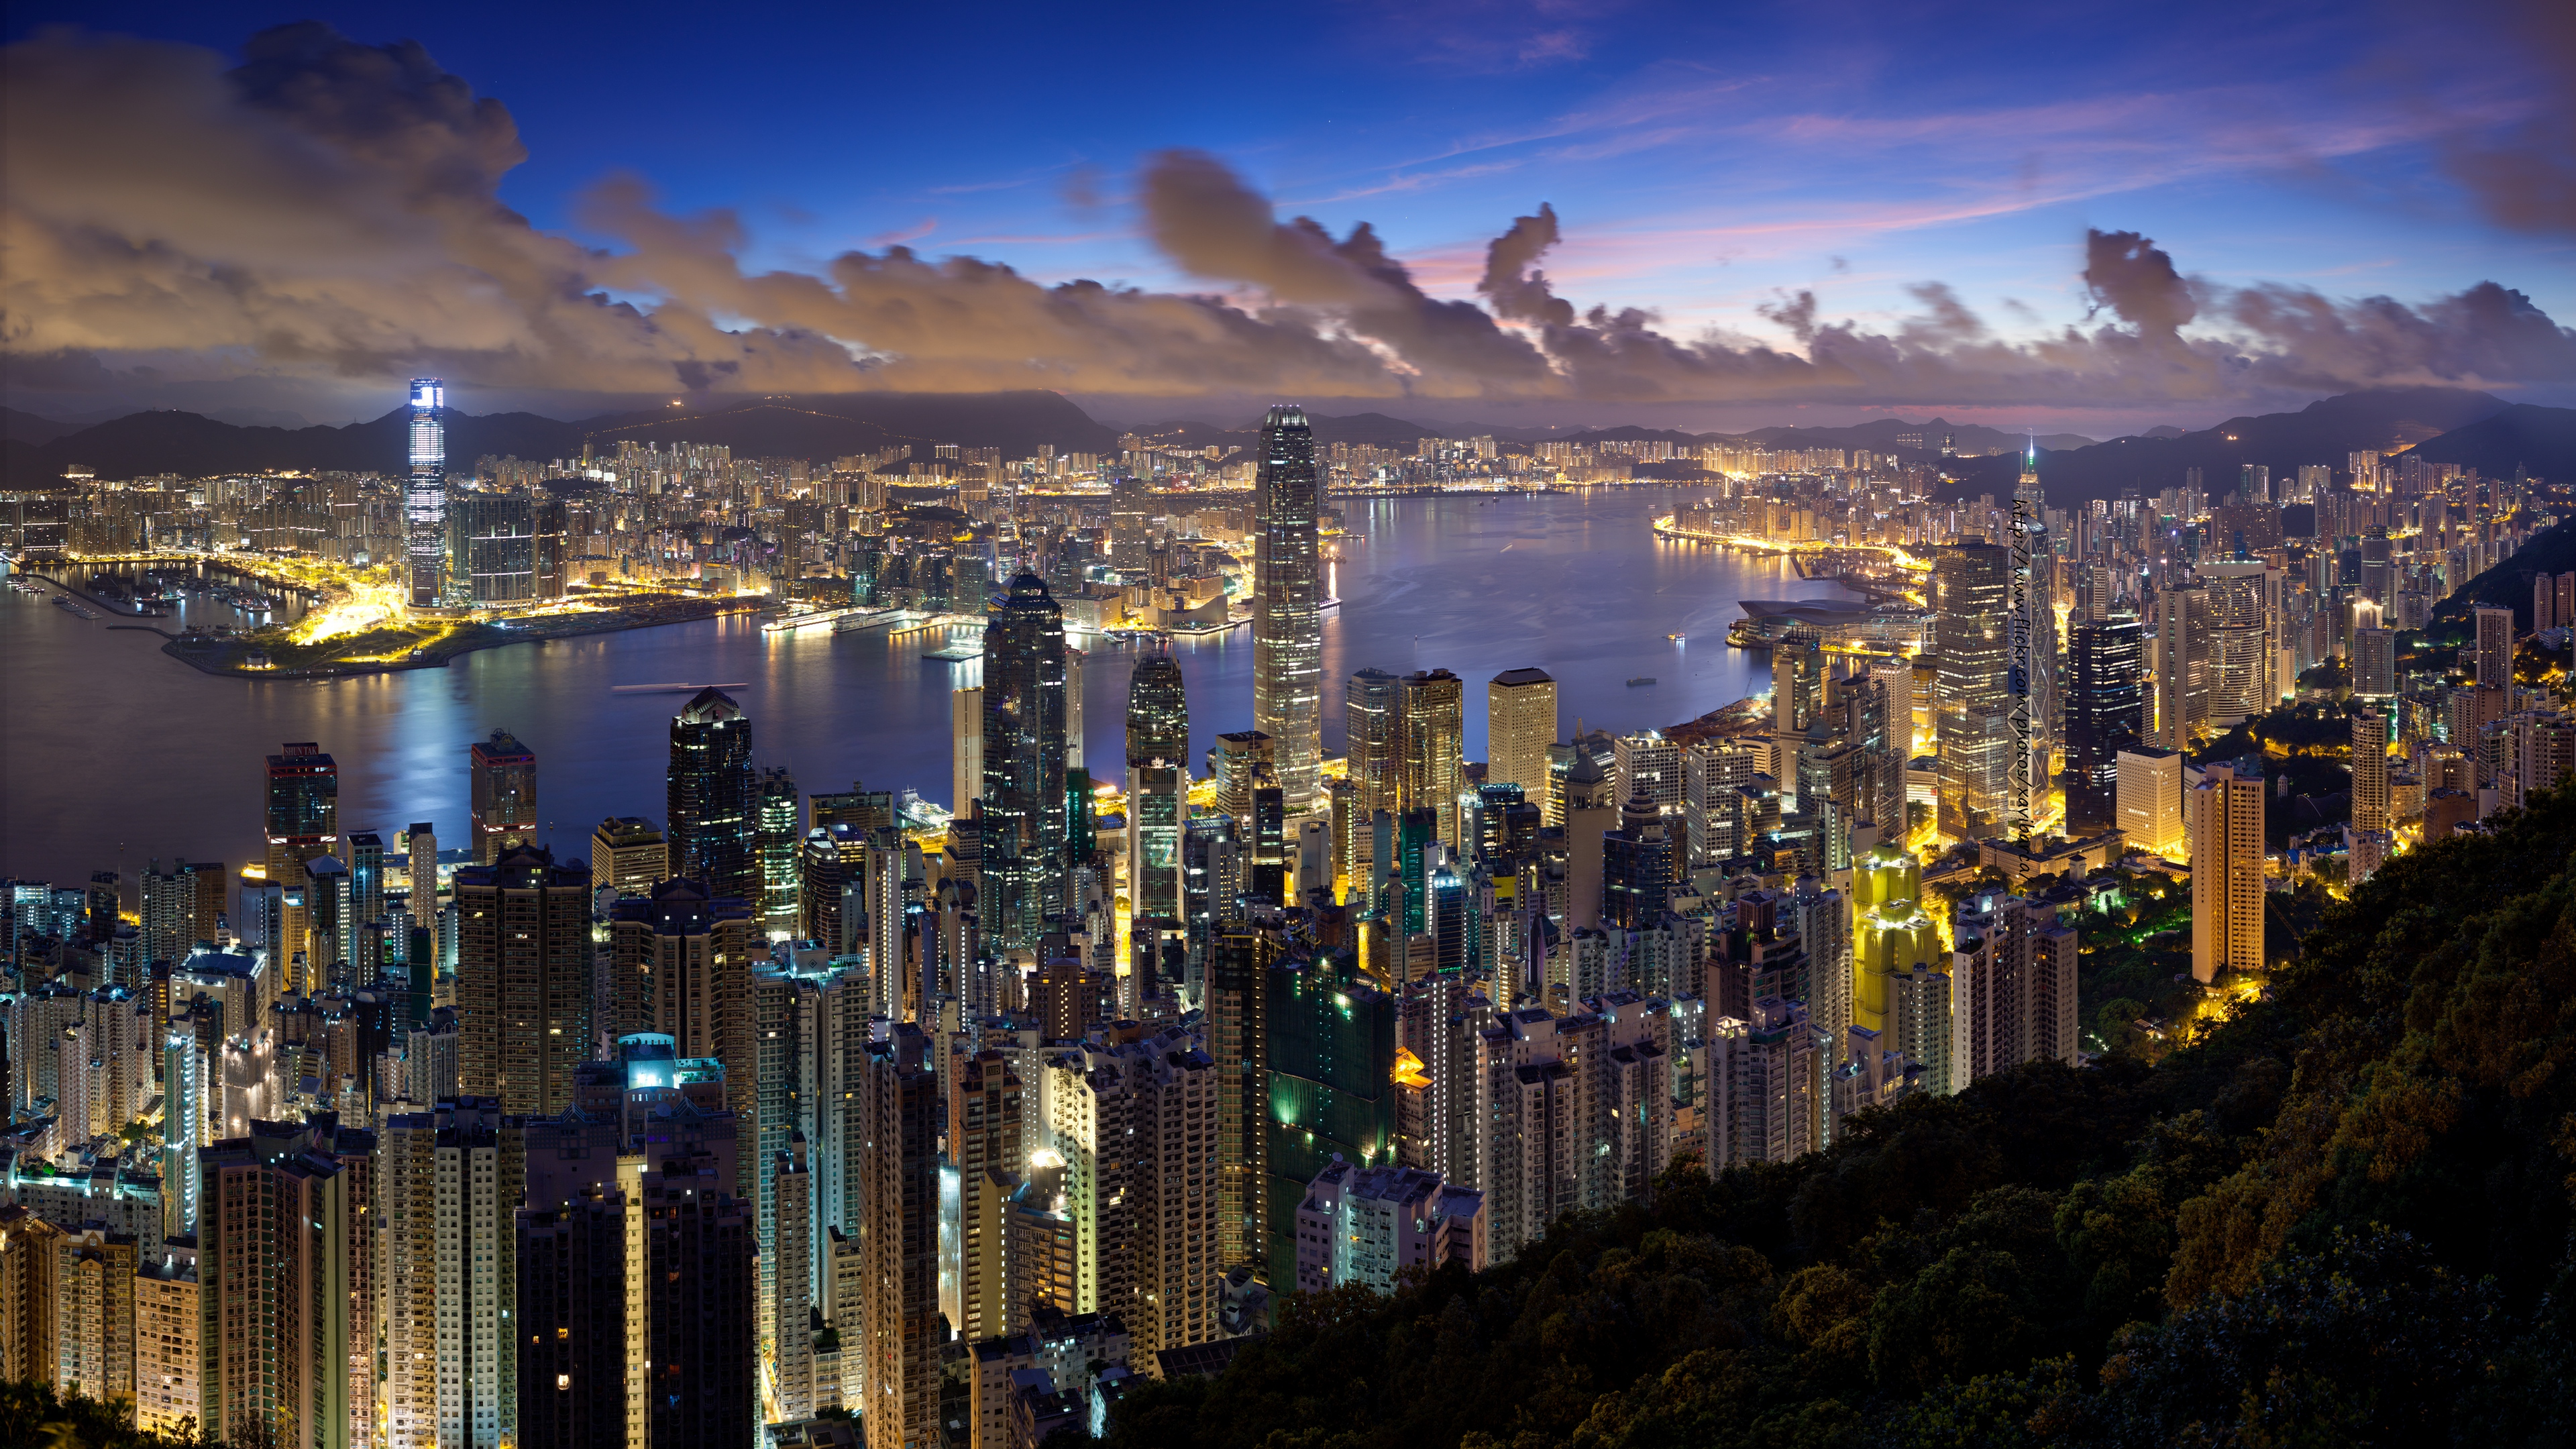 4k-ultra-hd-wallpaper-Hong-Kong-unabuenaidea.es (9)